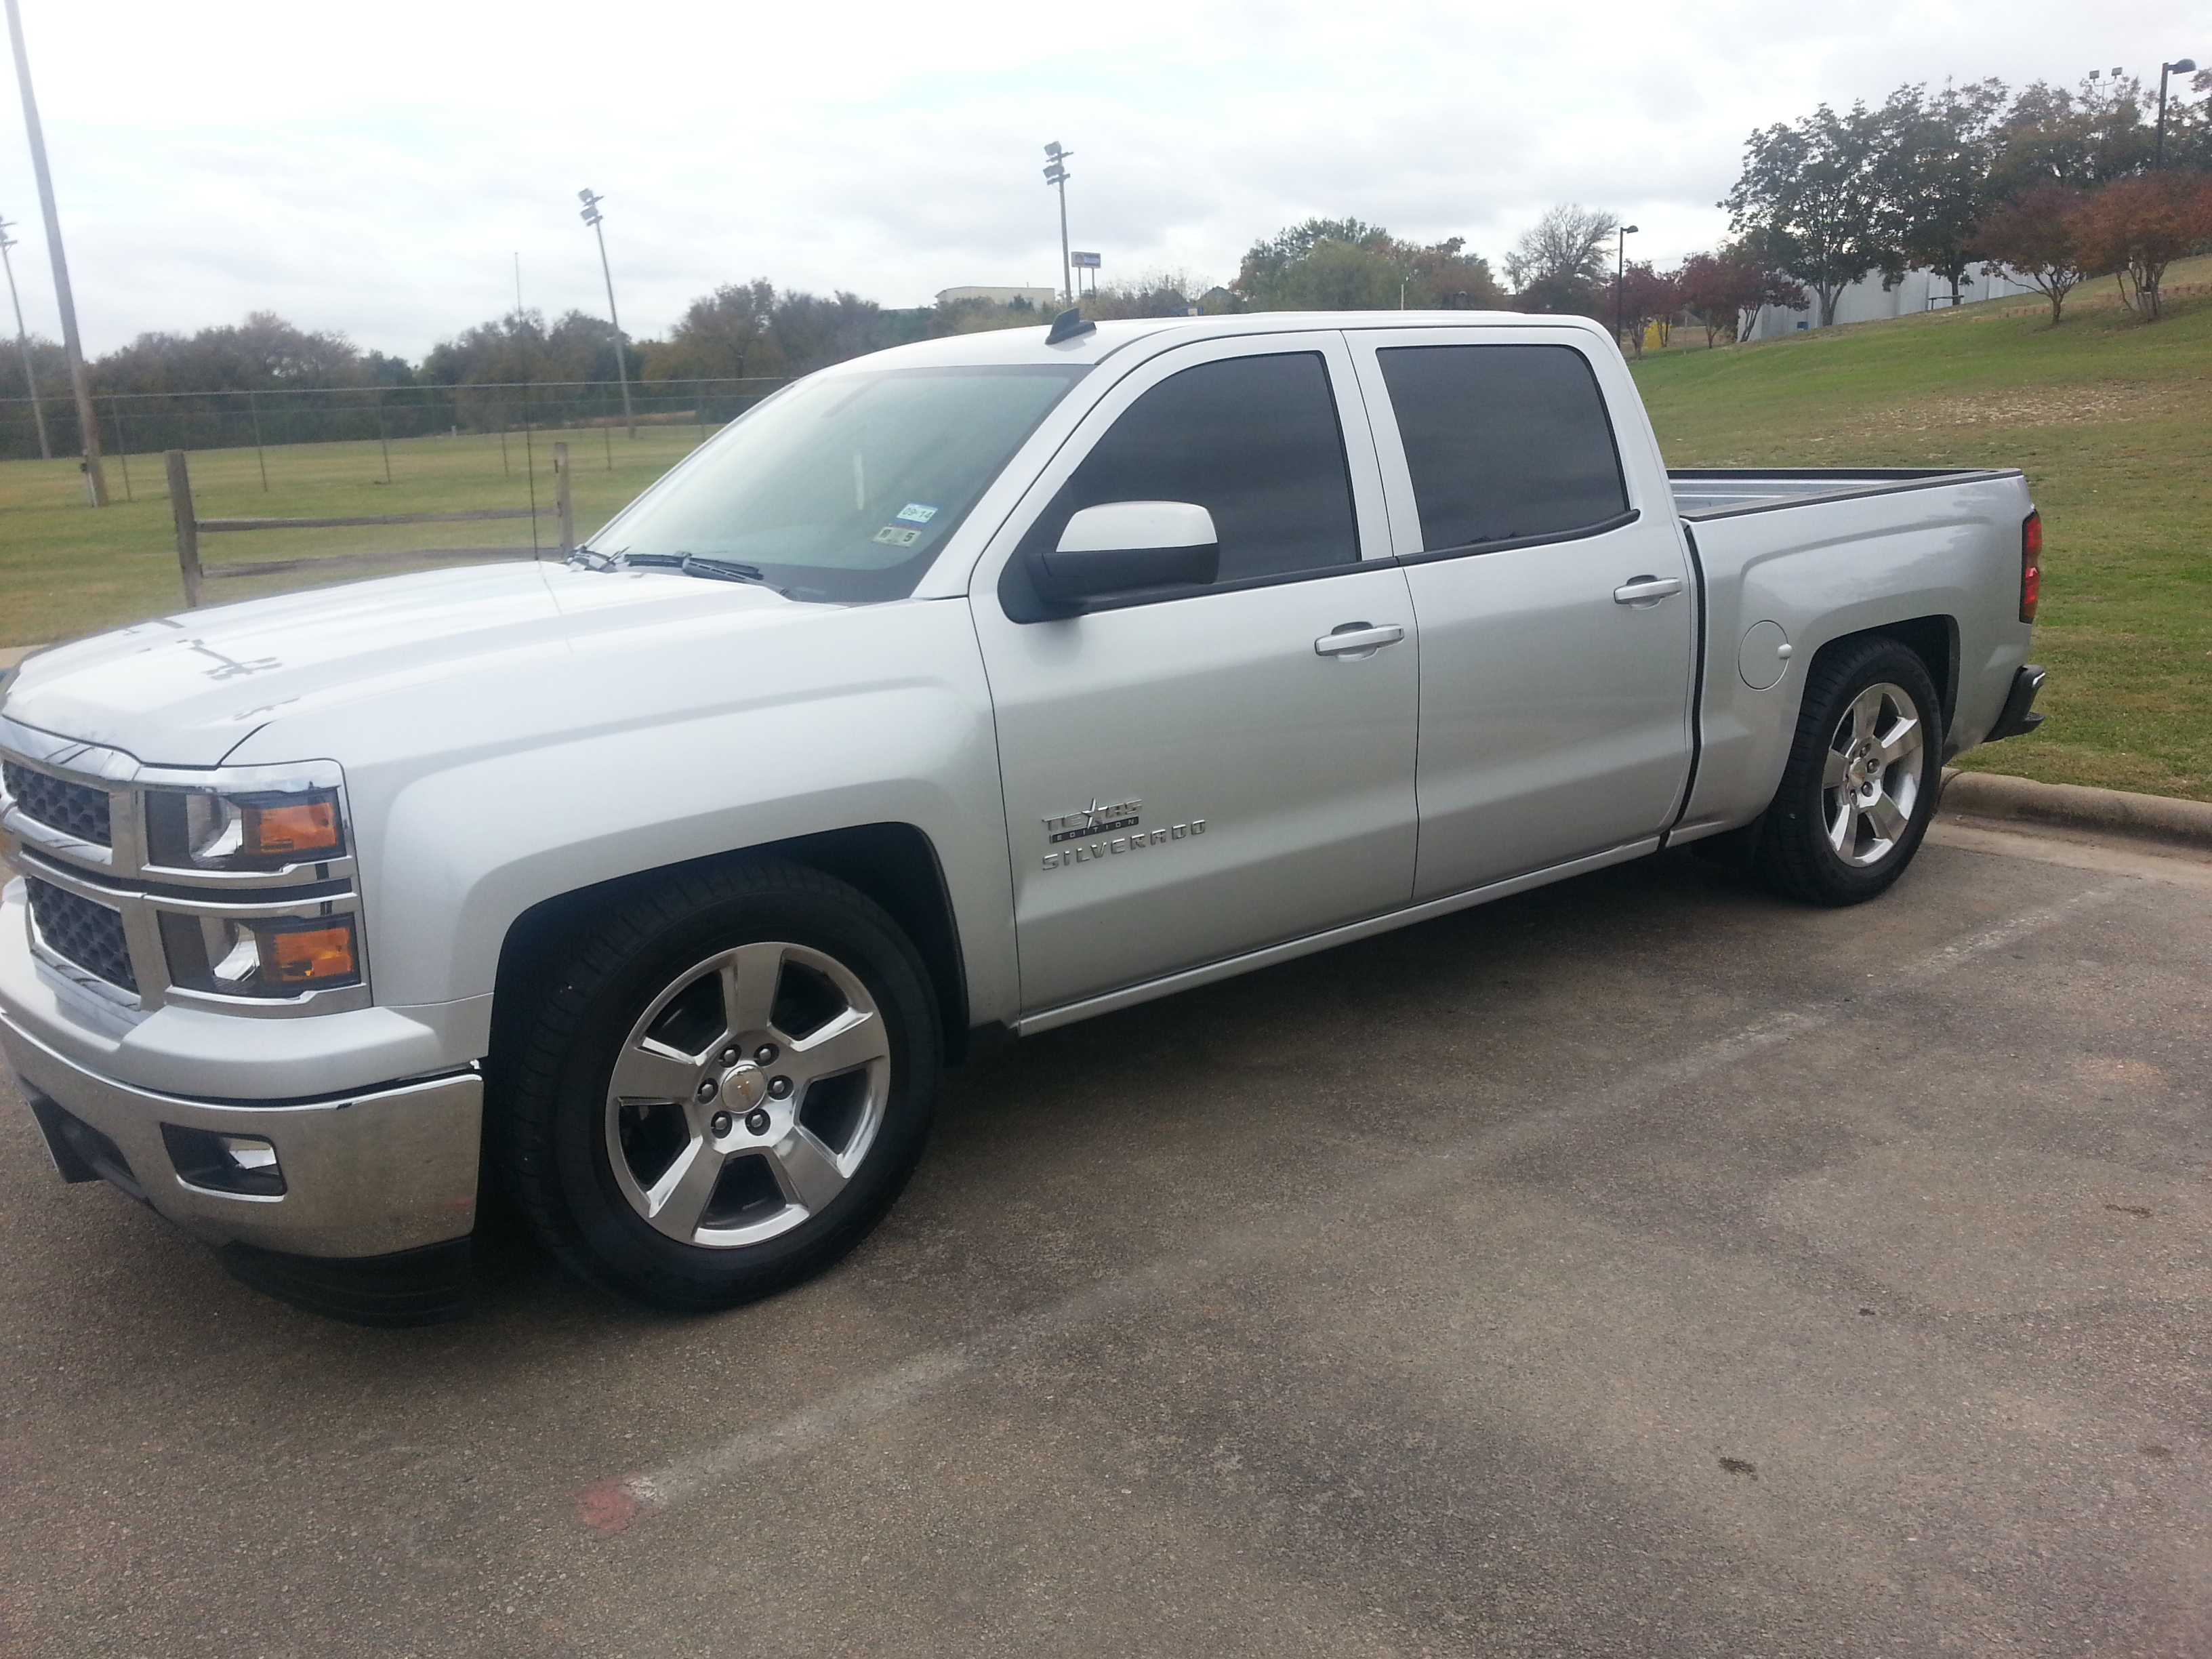 used 2014 chevrolet silverado 1500 pricing features page 2. Black Bedroom Furniture Sets. Home Design Ideas